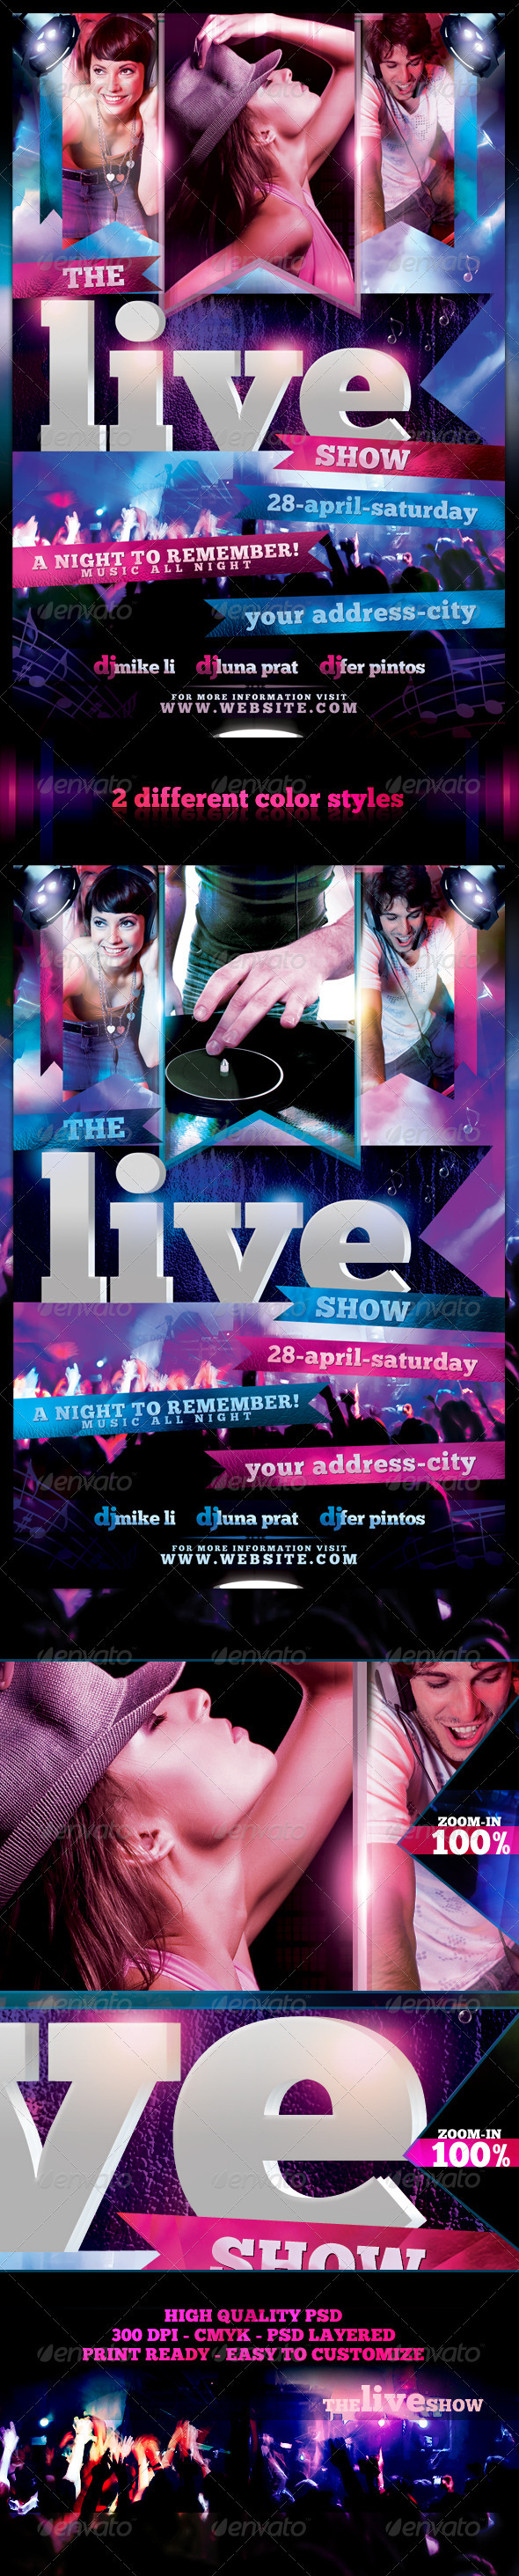 The Live Show Flyer Template - Flyers Print Templates